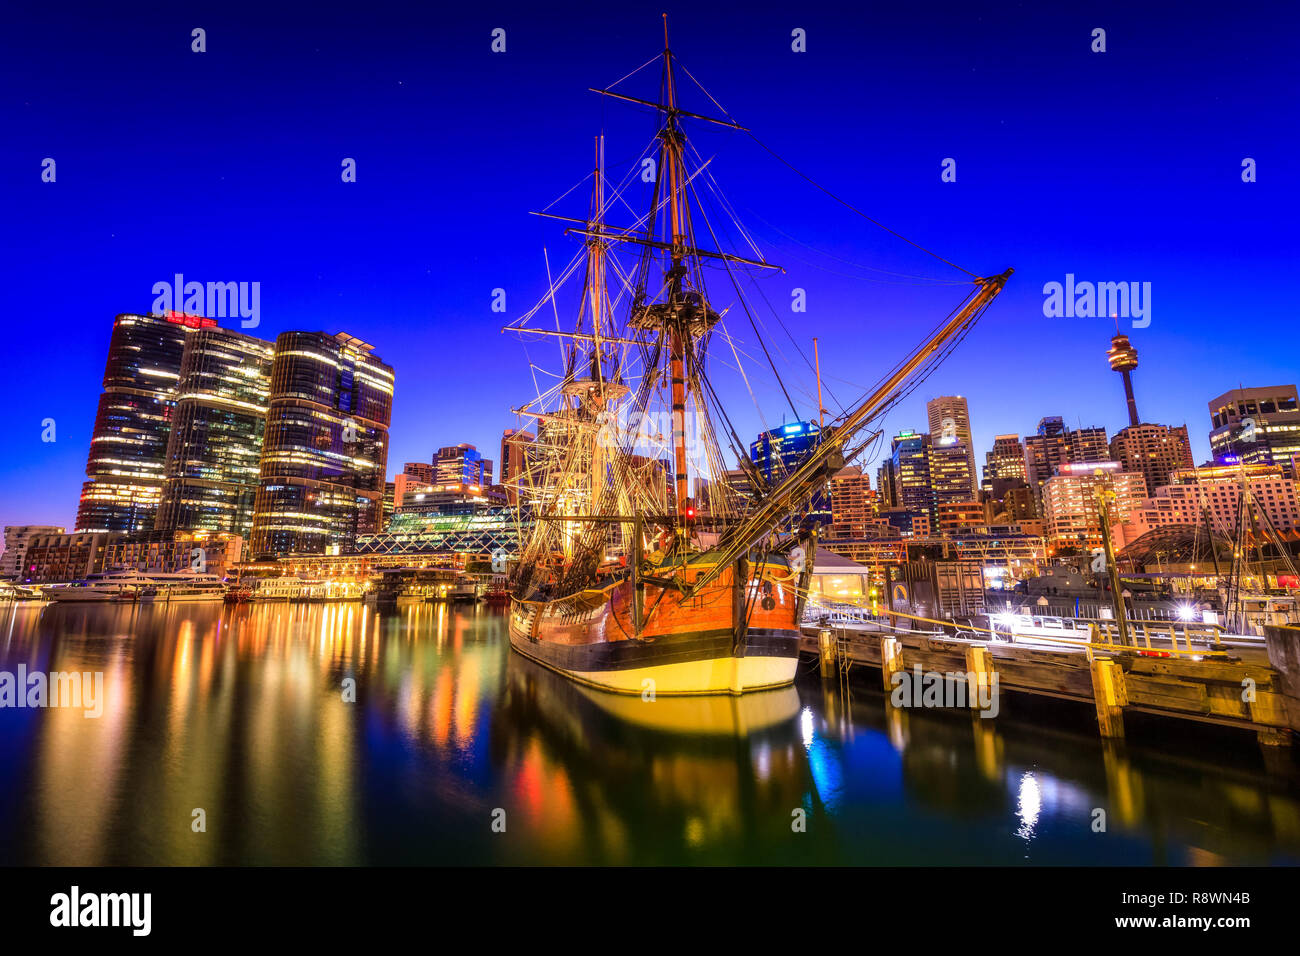 Bateau à voile à Darling Harbour, Sydney Photo Stock